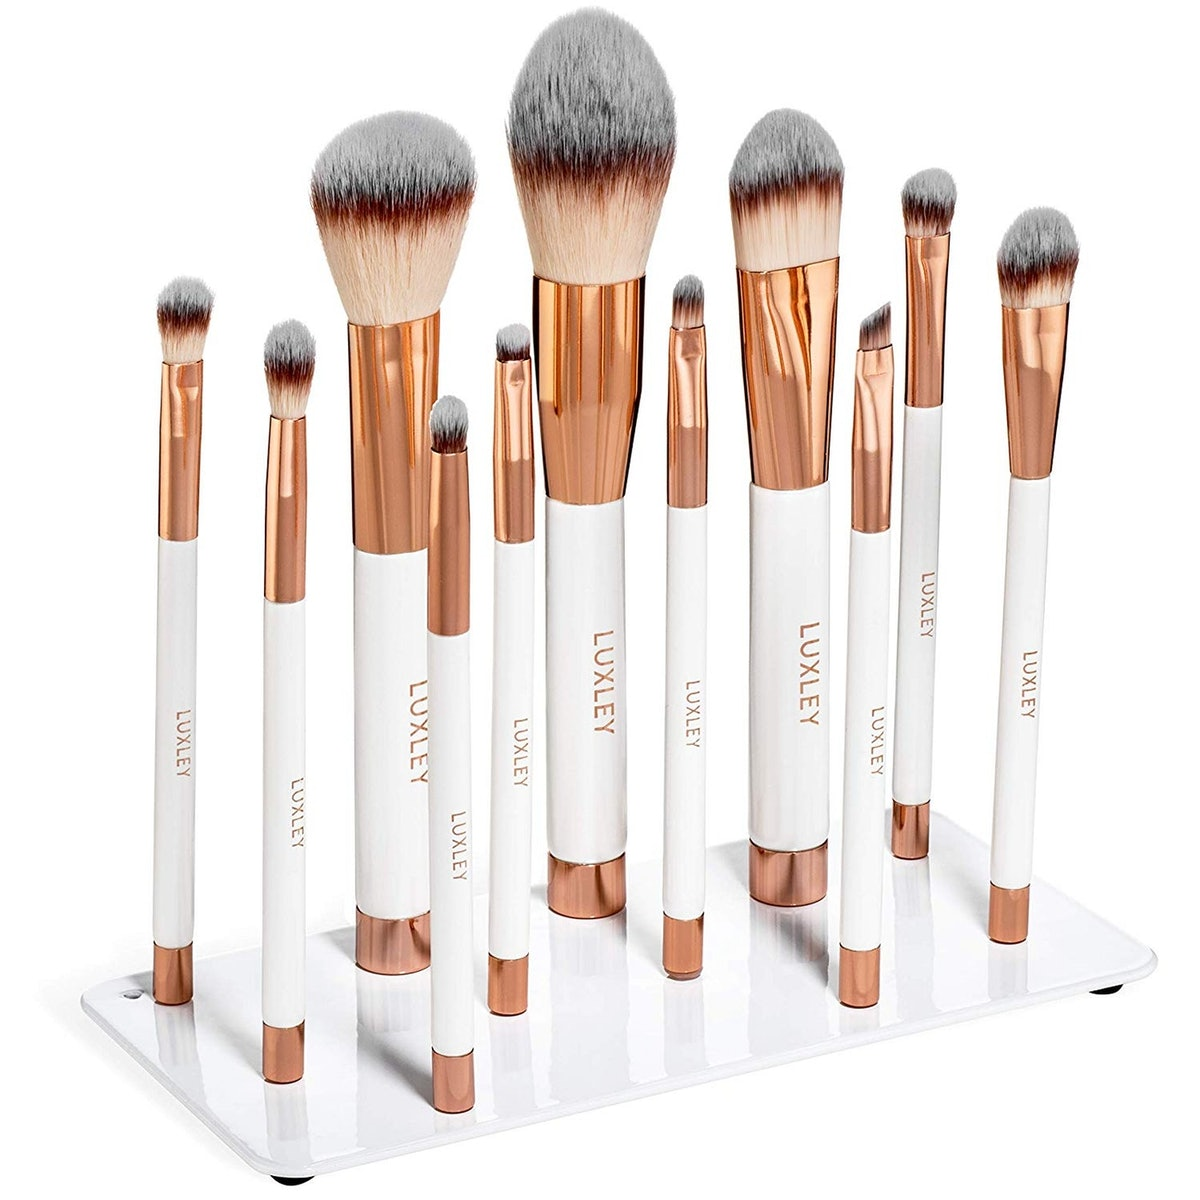 Luxley Magnetic Makeup Brushes (11 Brushes)